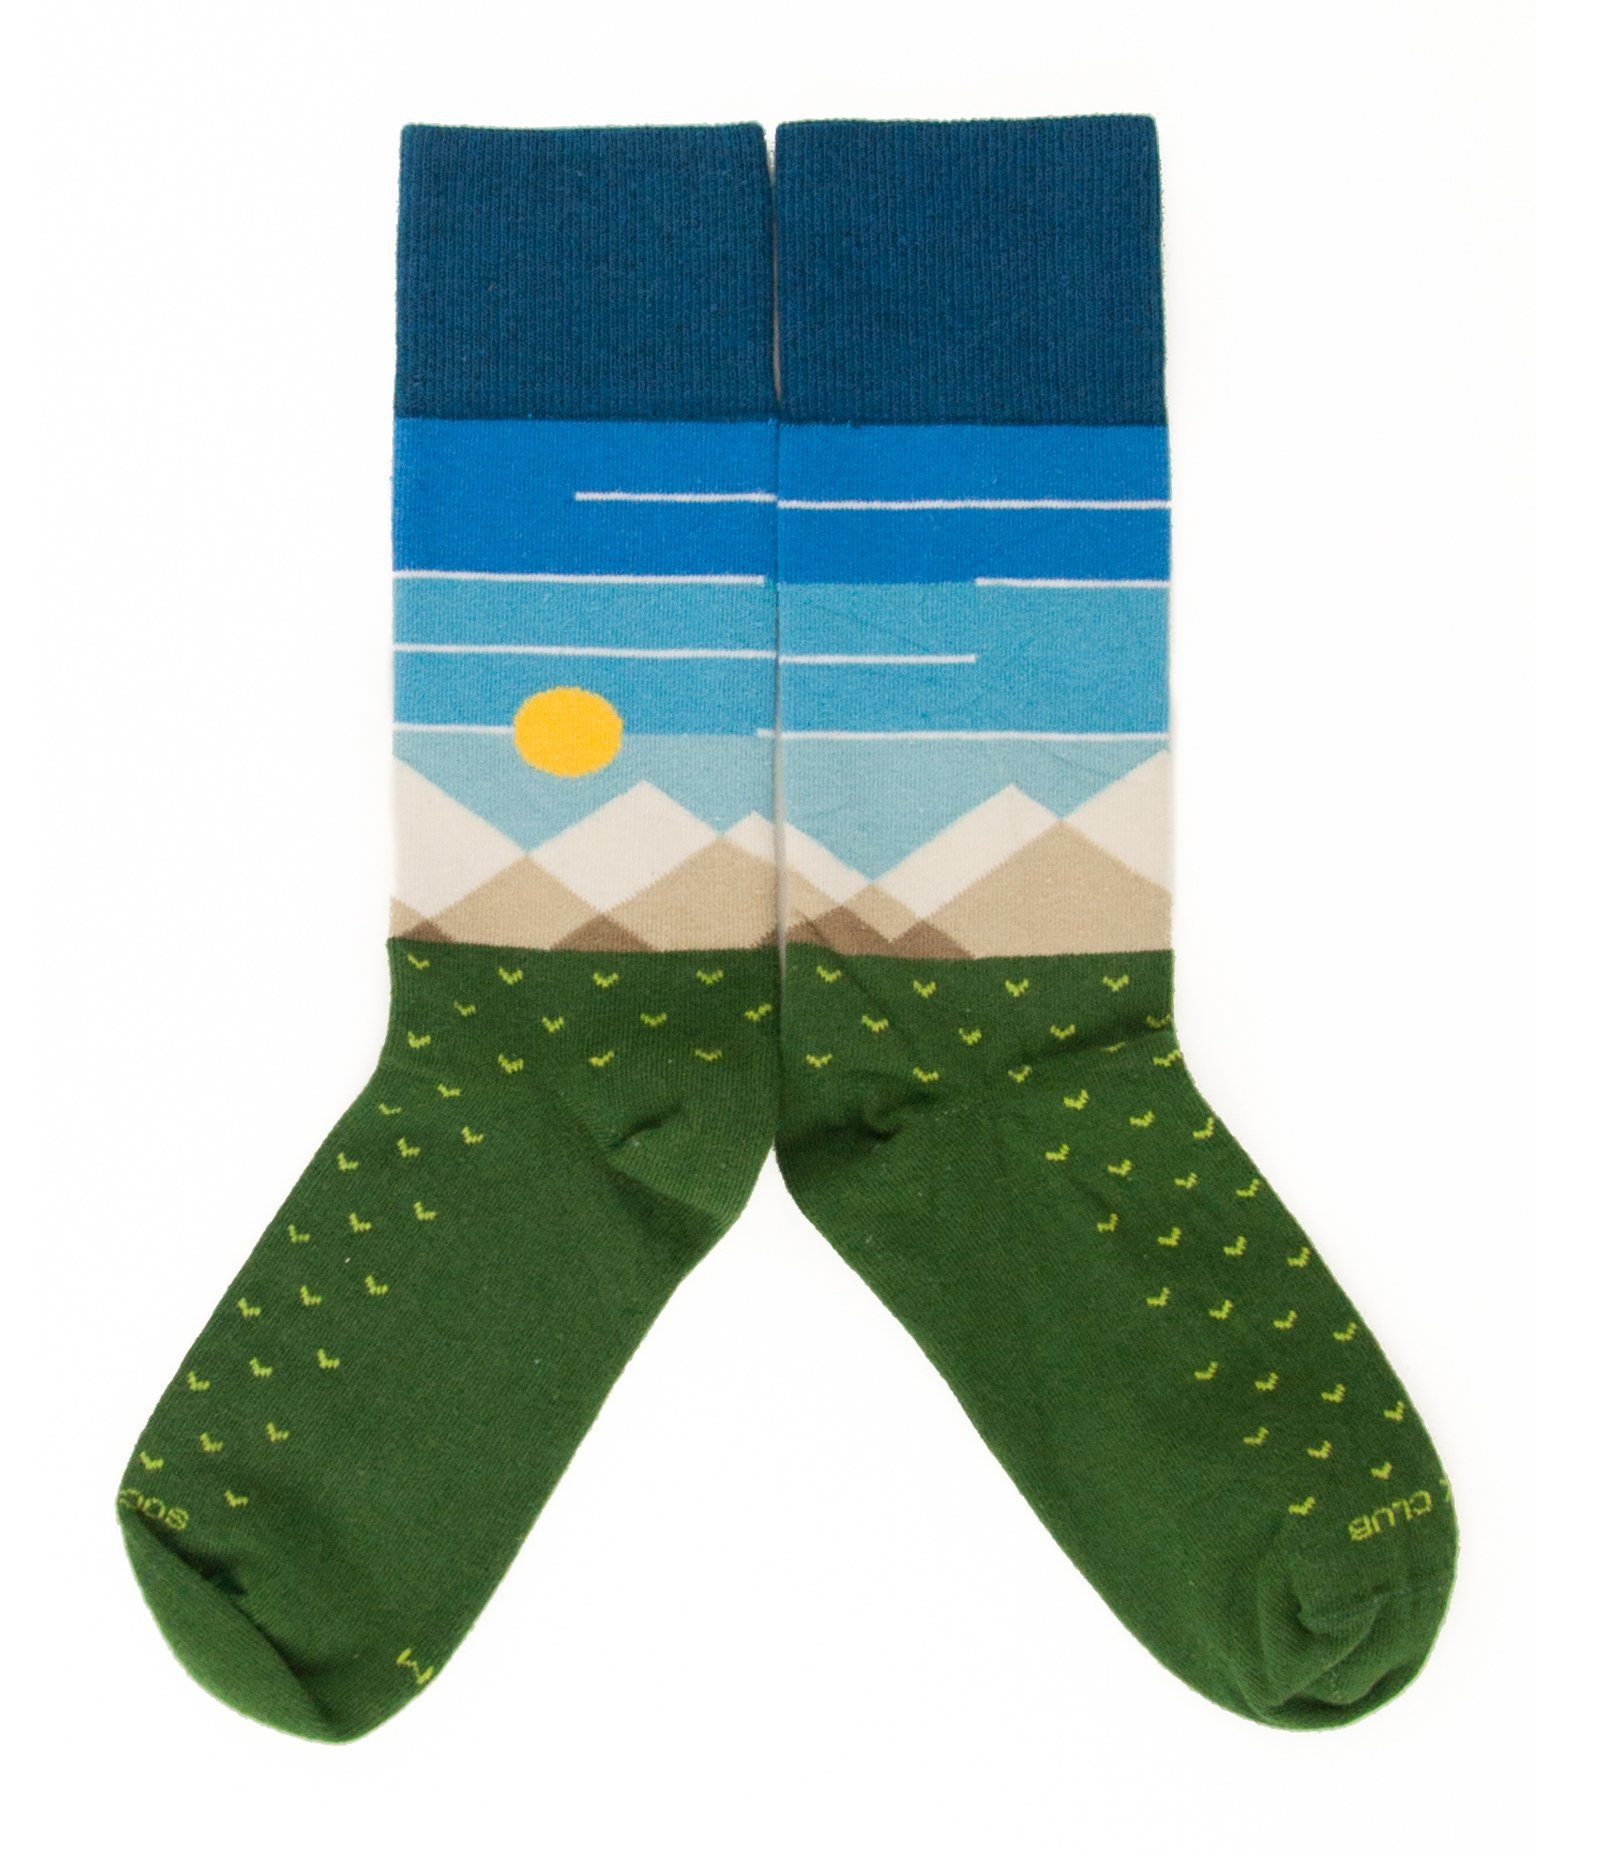 The Frontier - Pine - Sock Club Store